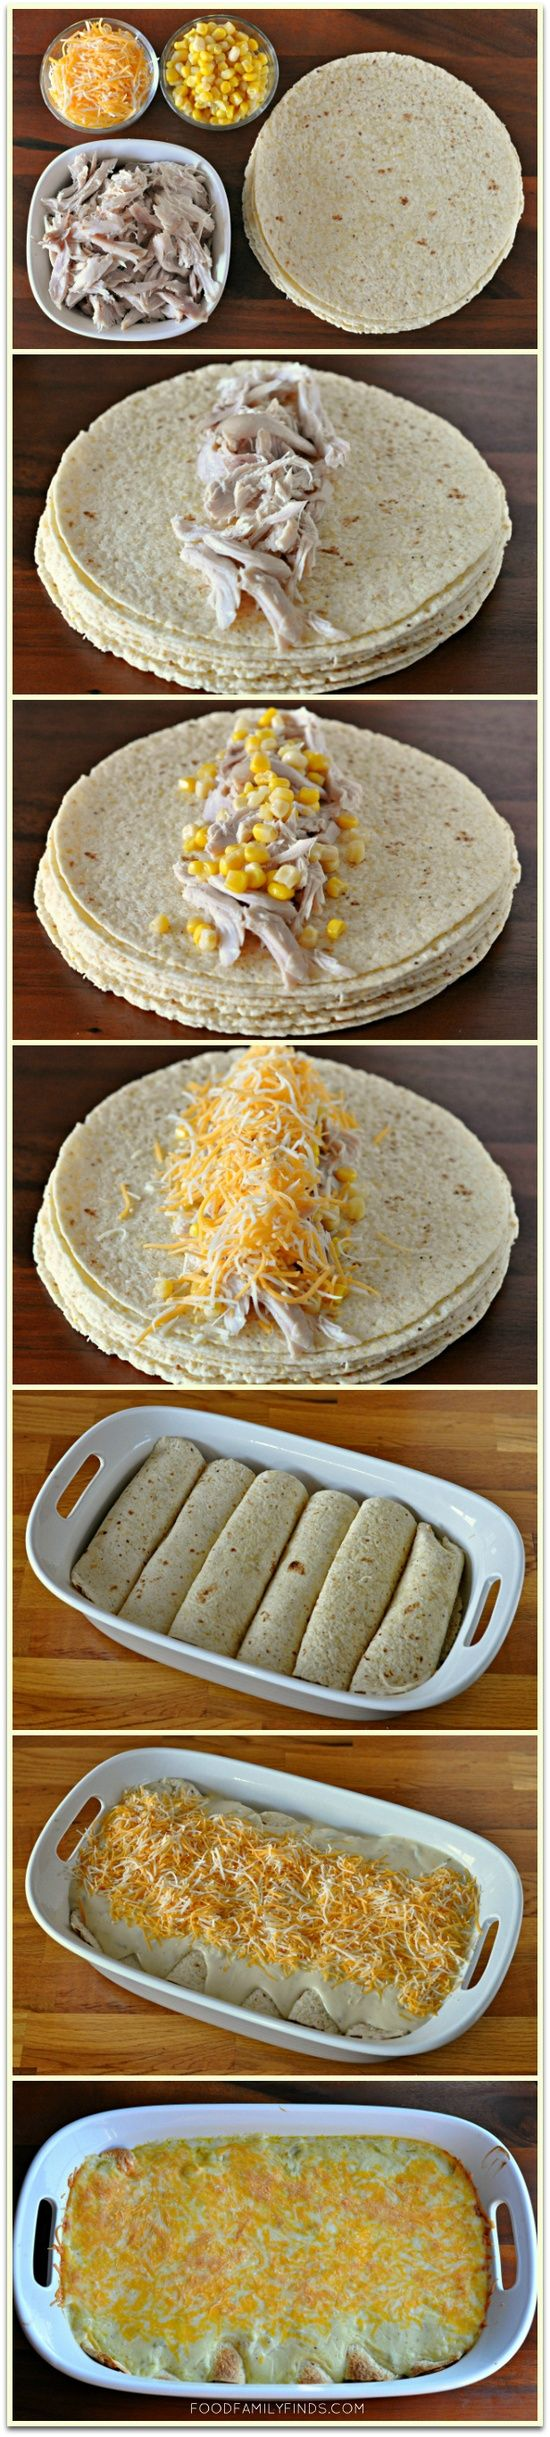 Easy and Creamy White Chicken Enchiladas    6-8 corn tortillas (enchilada size)  1 pre-cooked plain rotisserie chicken, shredded  1 cup sweet corn  4 cups shredded Mexican blend cheese, divided in half     Sauce:  3 tablespoons butter  3 tablespoons all purpose flour  1-1/4 cups chicken broth  1 - 10oz can cream of chicken soup  1 cup sour cream  1 - 4oz can chopped green chiles  1/4 teaspoon ground black pepper  1/4 teaspoon sea salt  Oven @ 350, 25-30 min